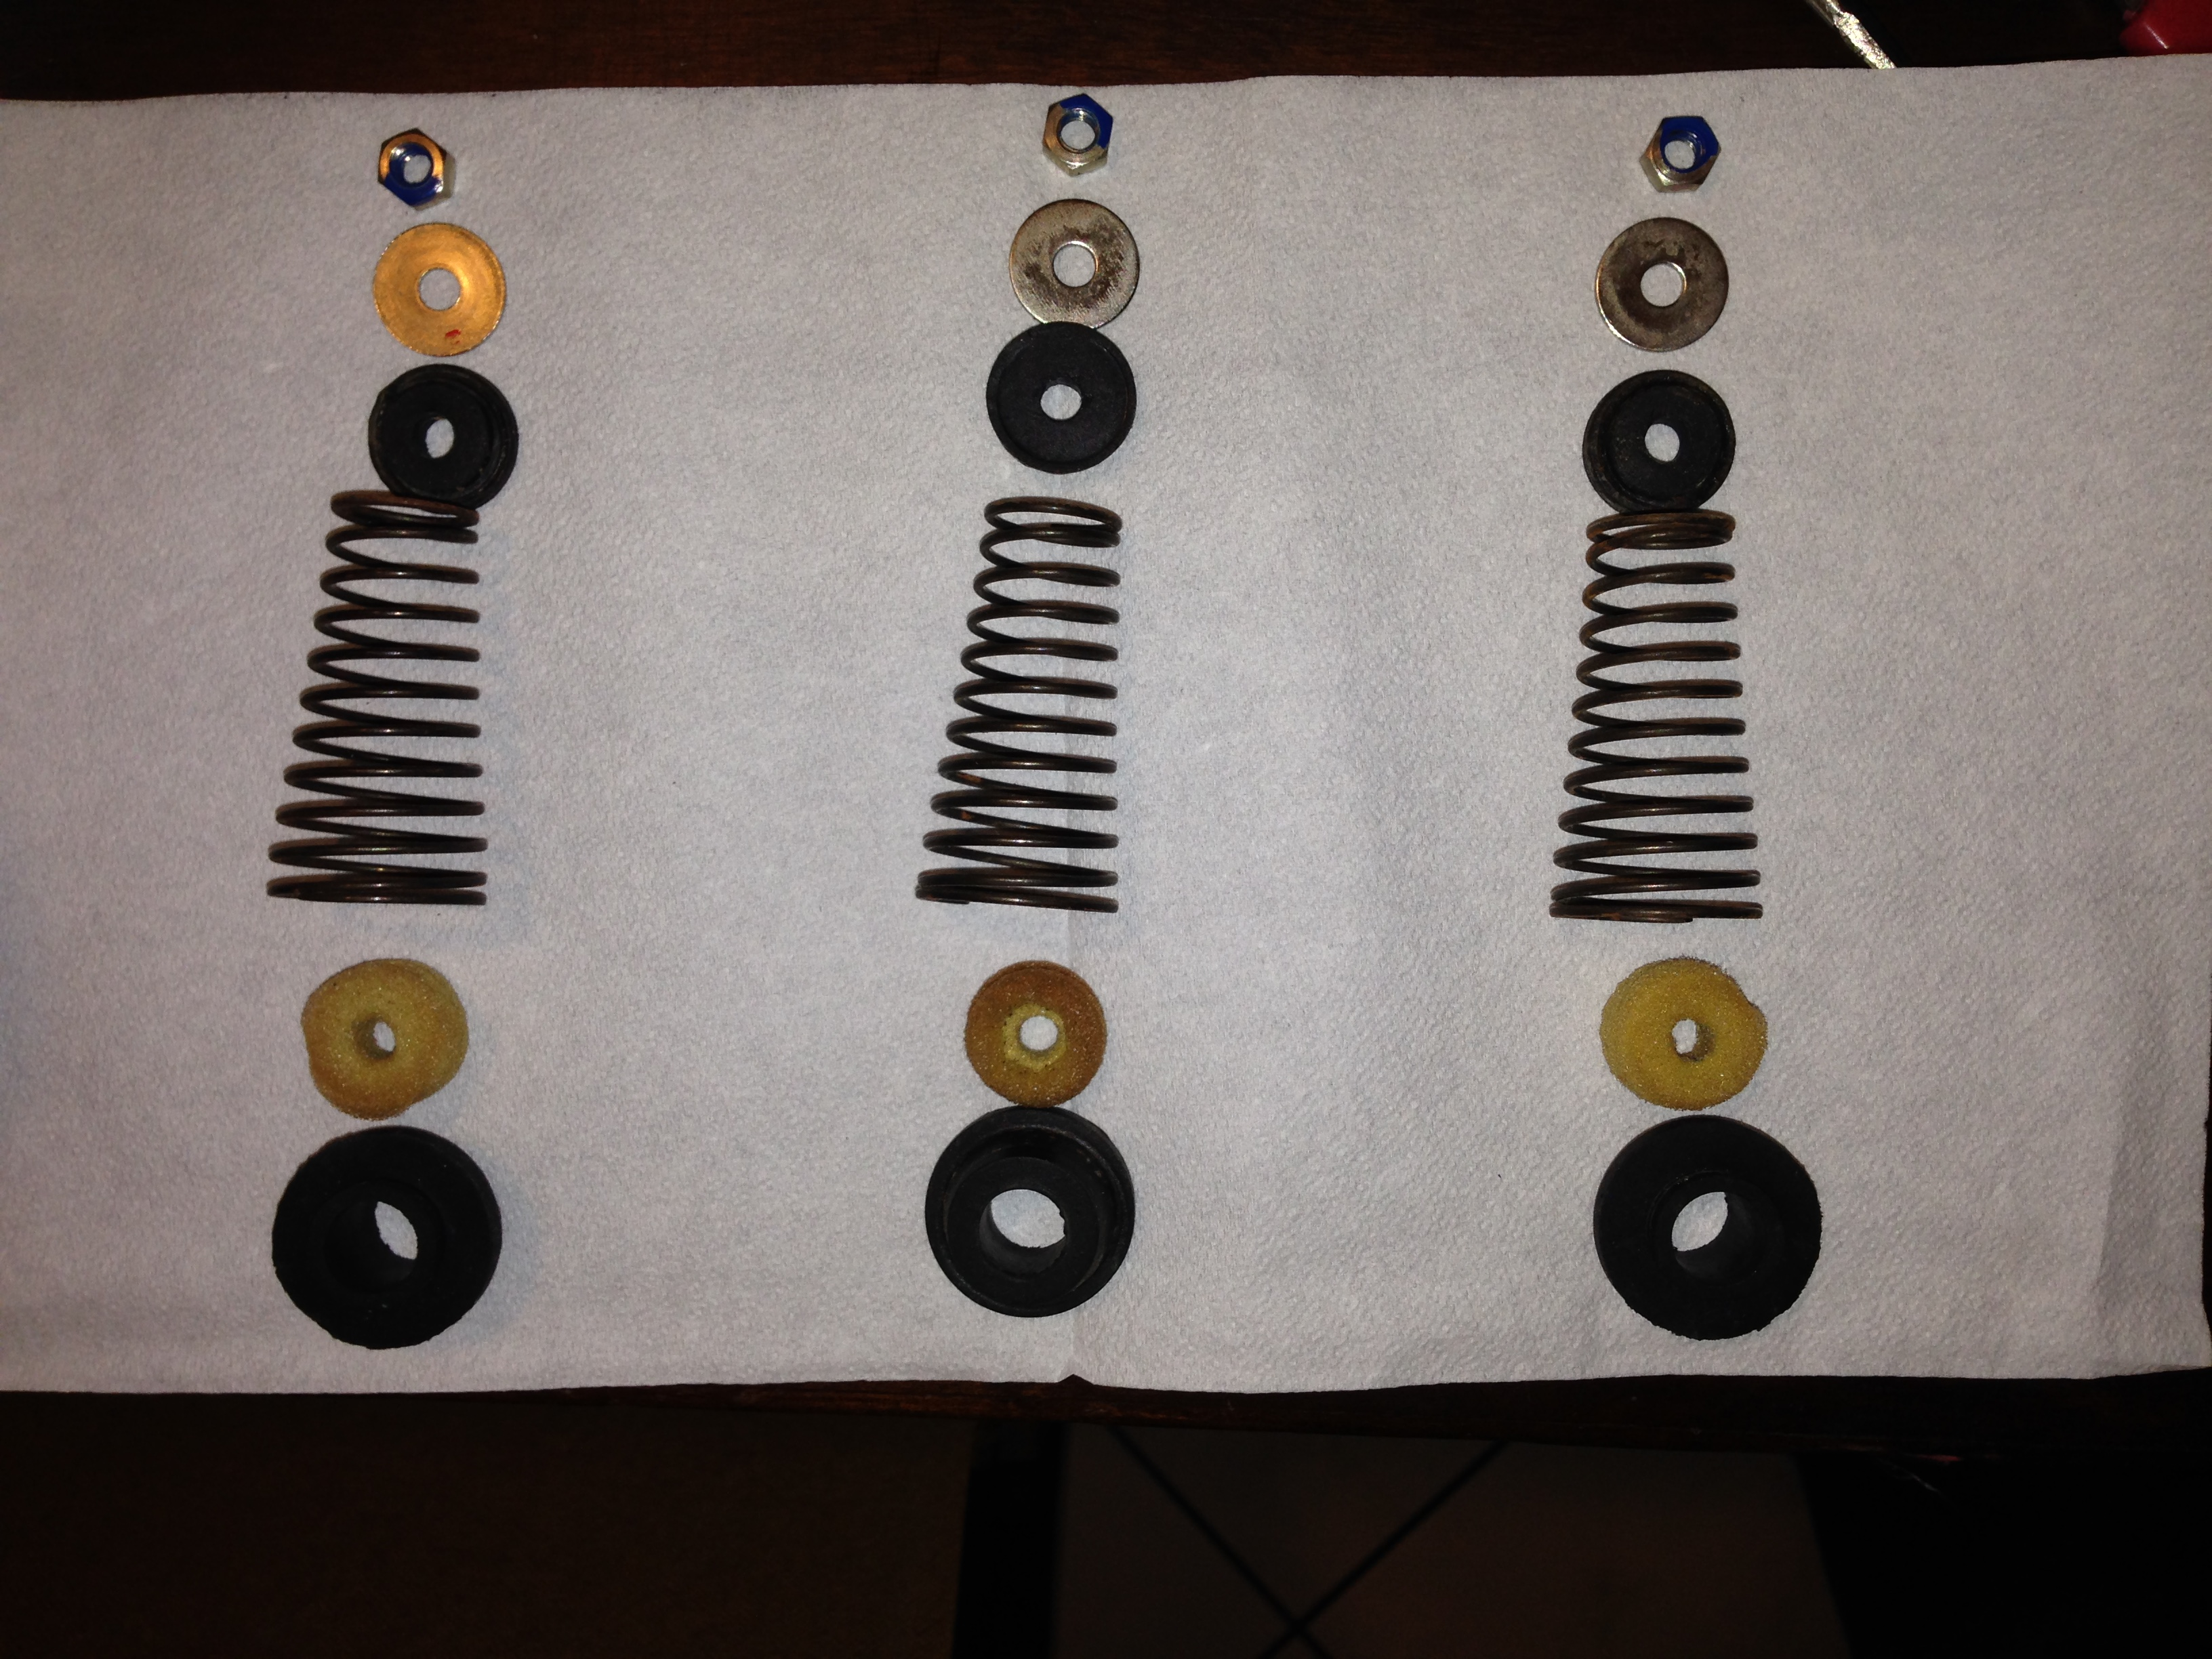 Spring assemblies made of springs, washers, grommets, and adjusting nuts - foam inserts are removed